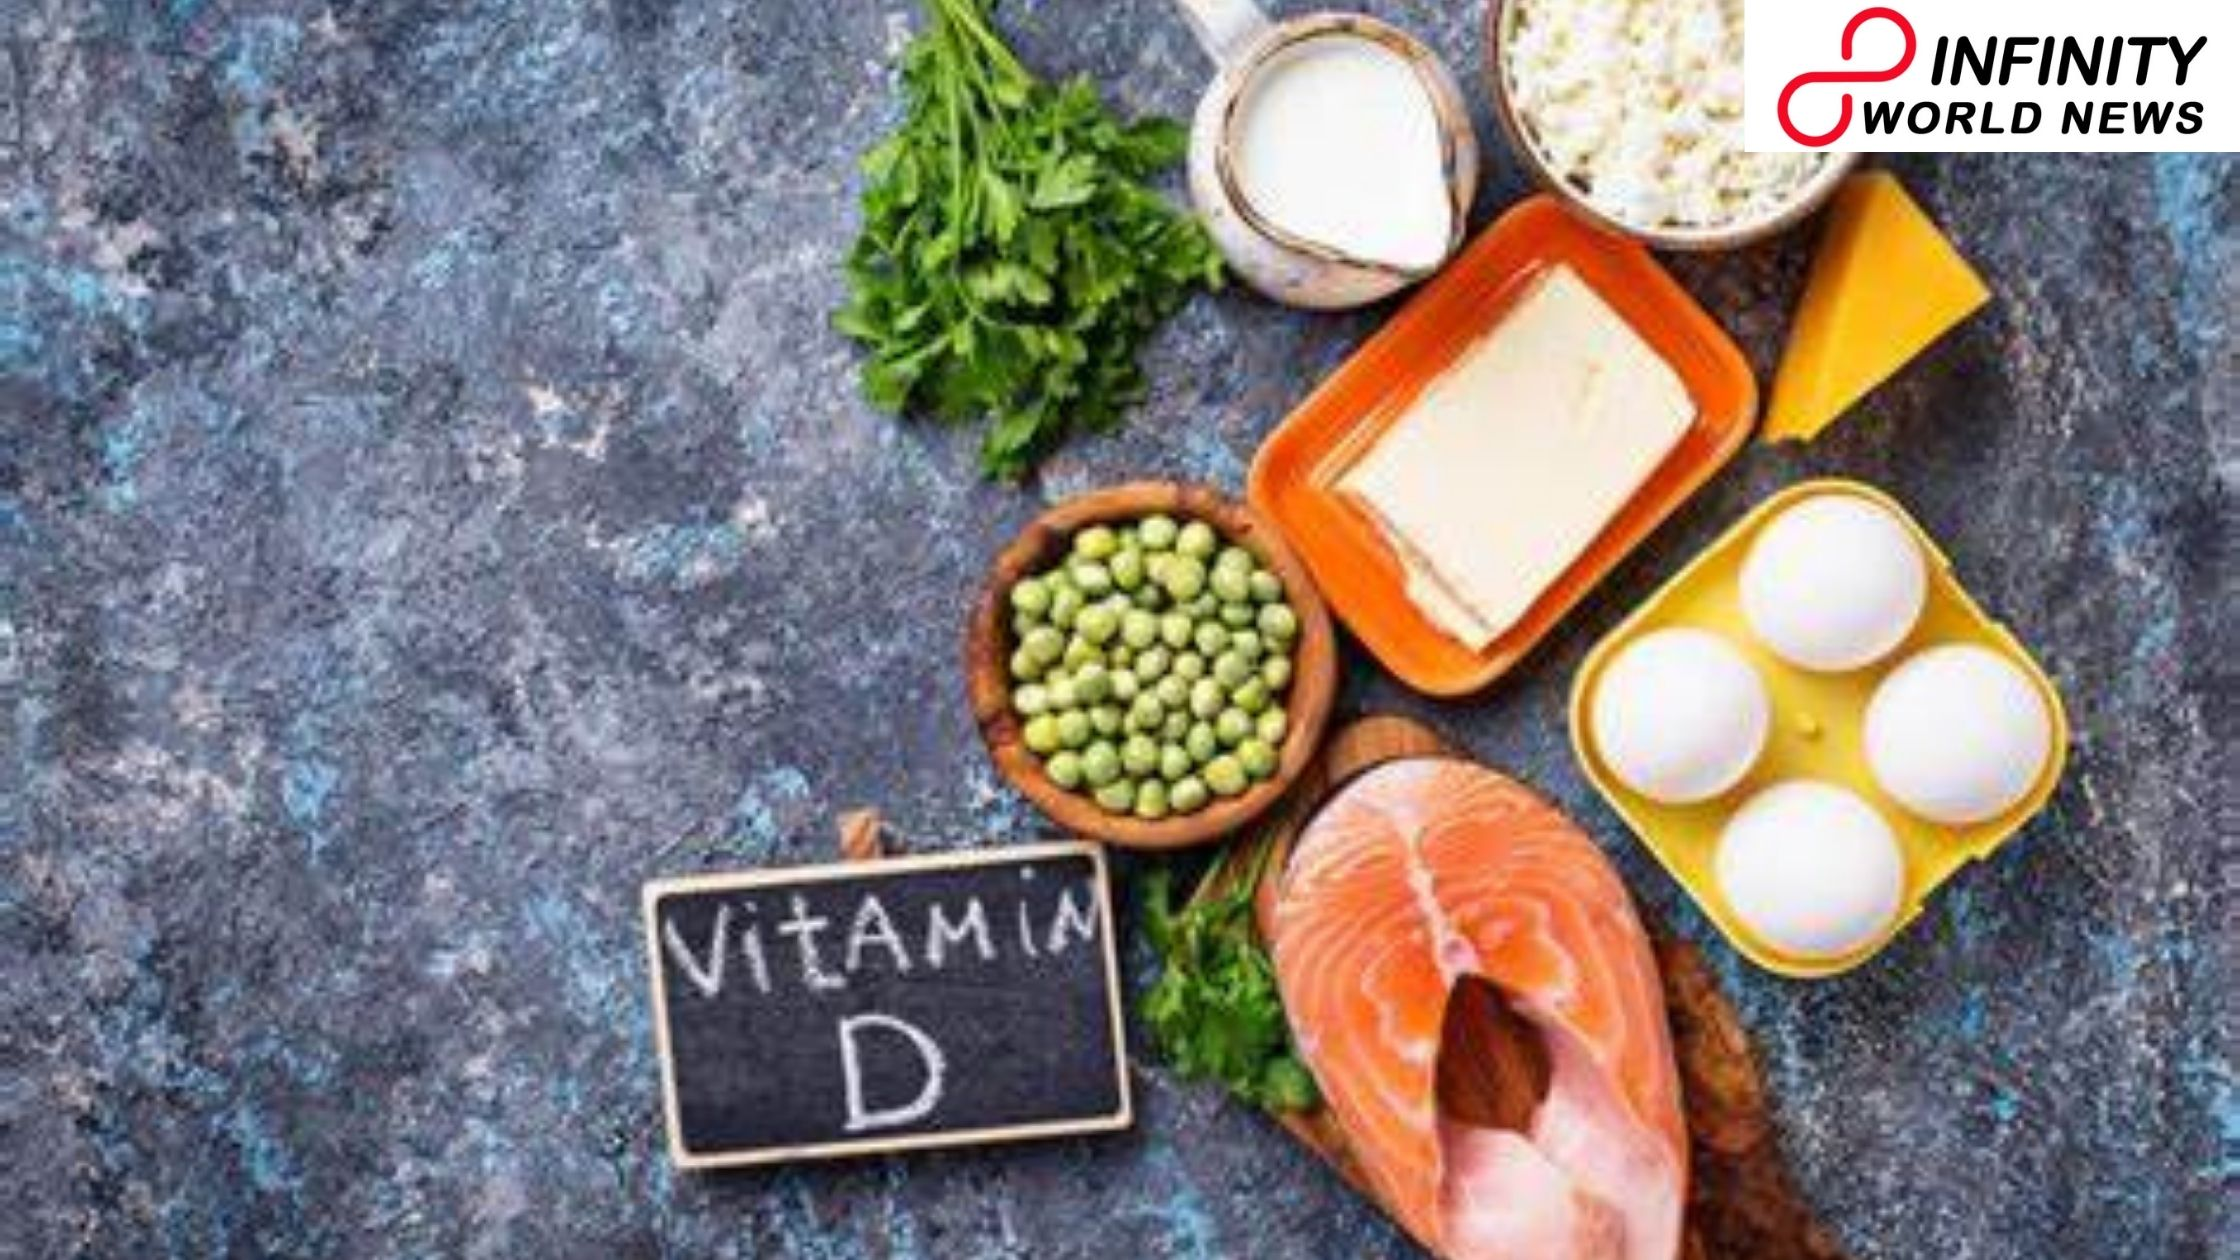 Does vitamin D provide strength against Covid disease_